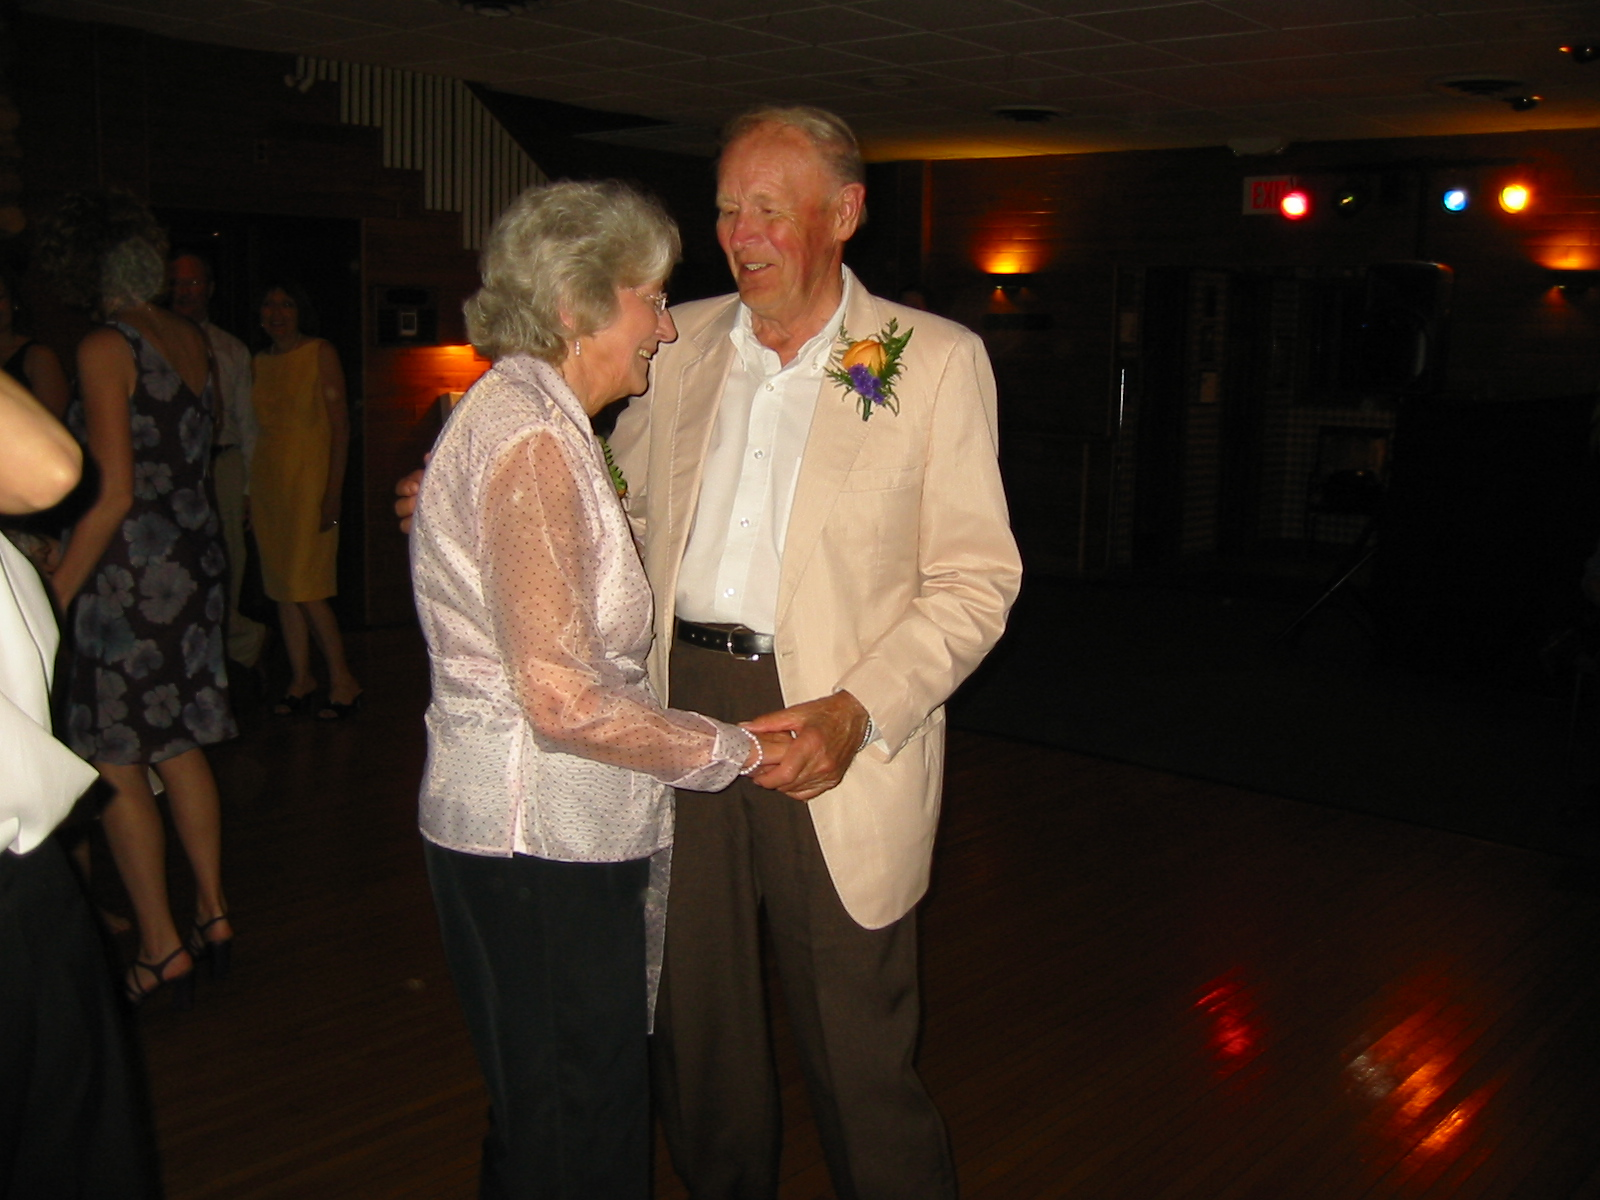 Grandma and Grandpa Dancing